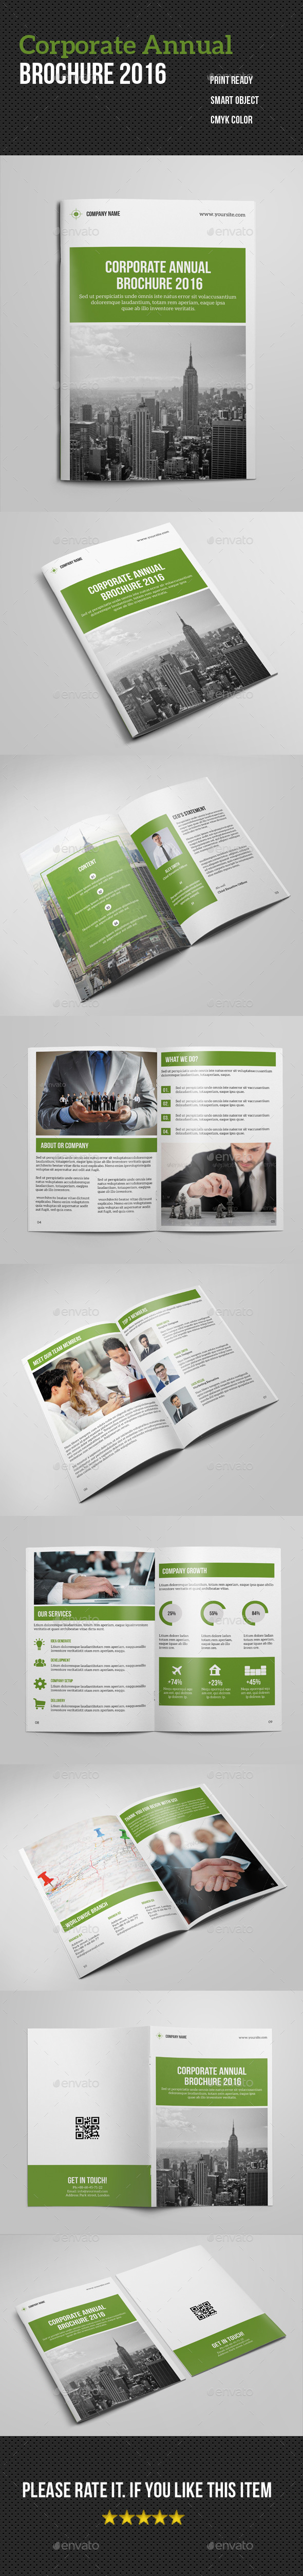 Bi- Fold Corporate Annual Brochure 2016 - Corporate Brochures